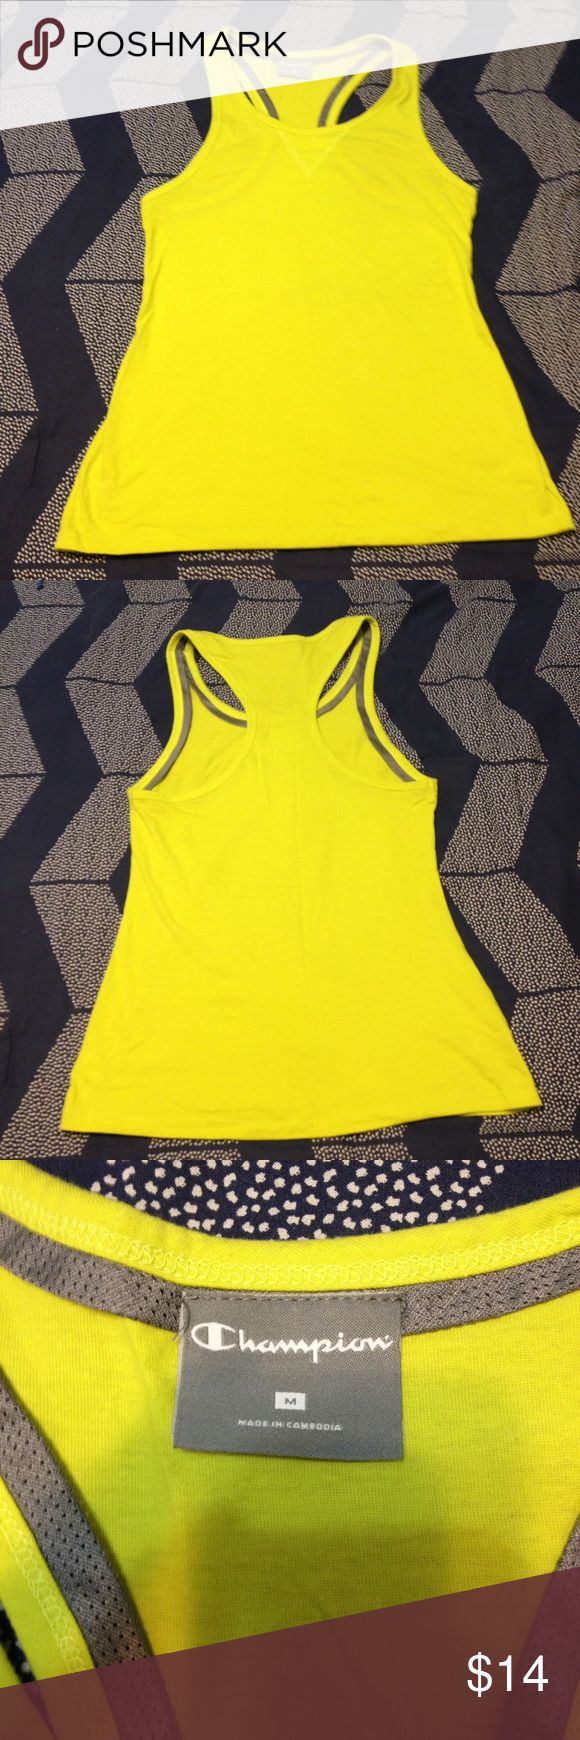 Champion Yellow Tank Top This tank top was never worn before and is in great condition Champion Tops Tank Tops